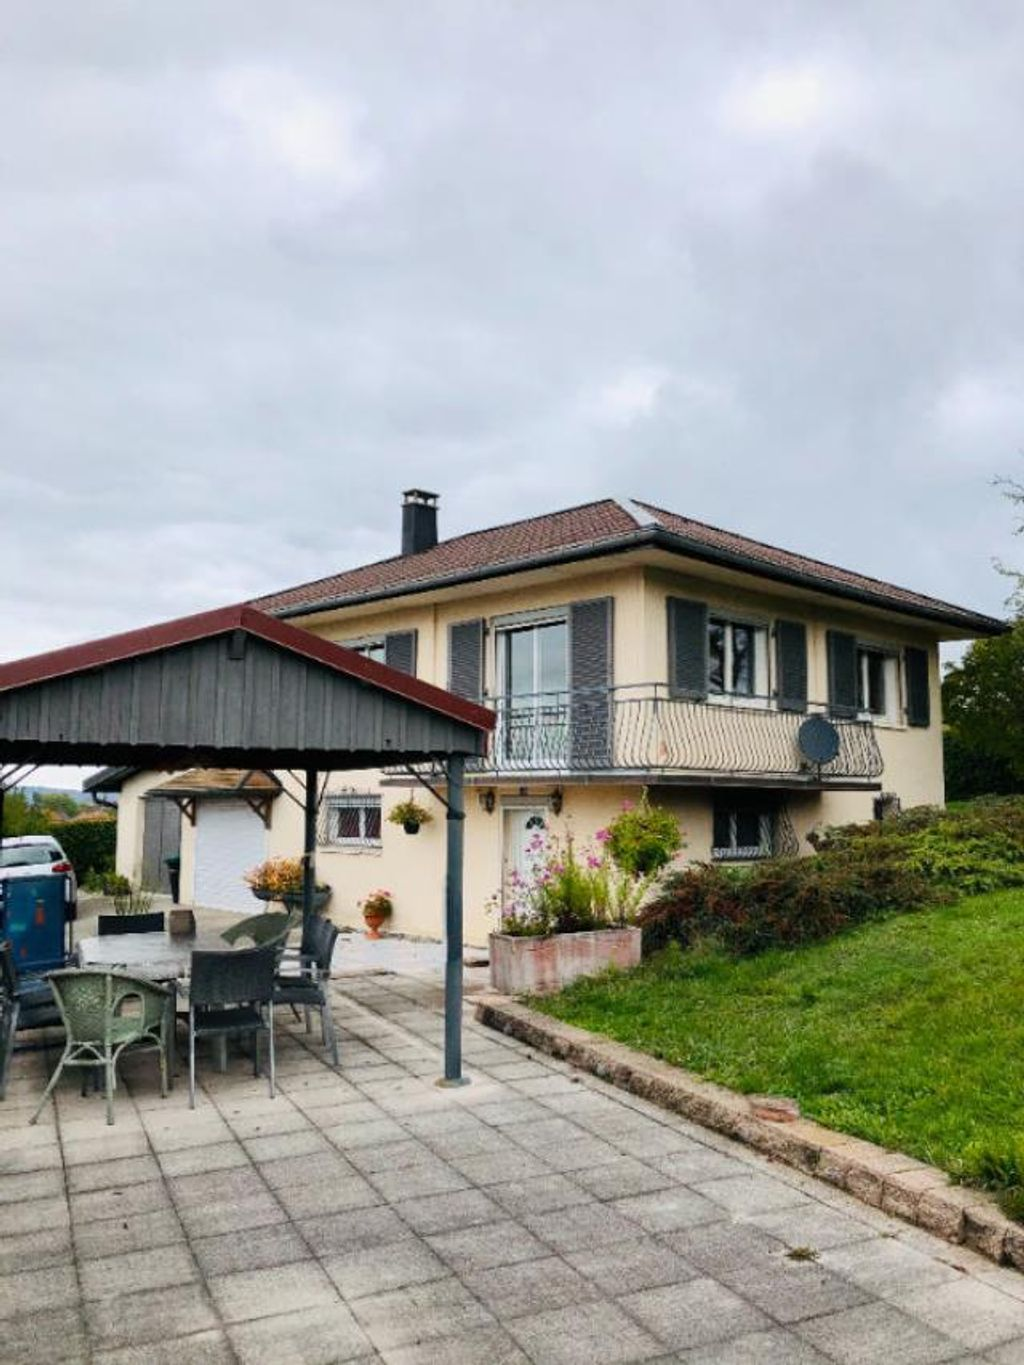 Achat maison 3 chambres 100 m² - Pontarlier